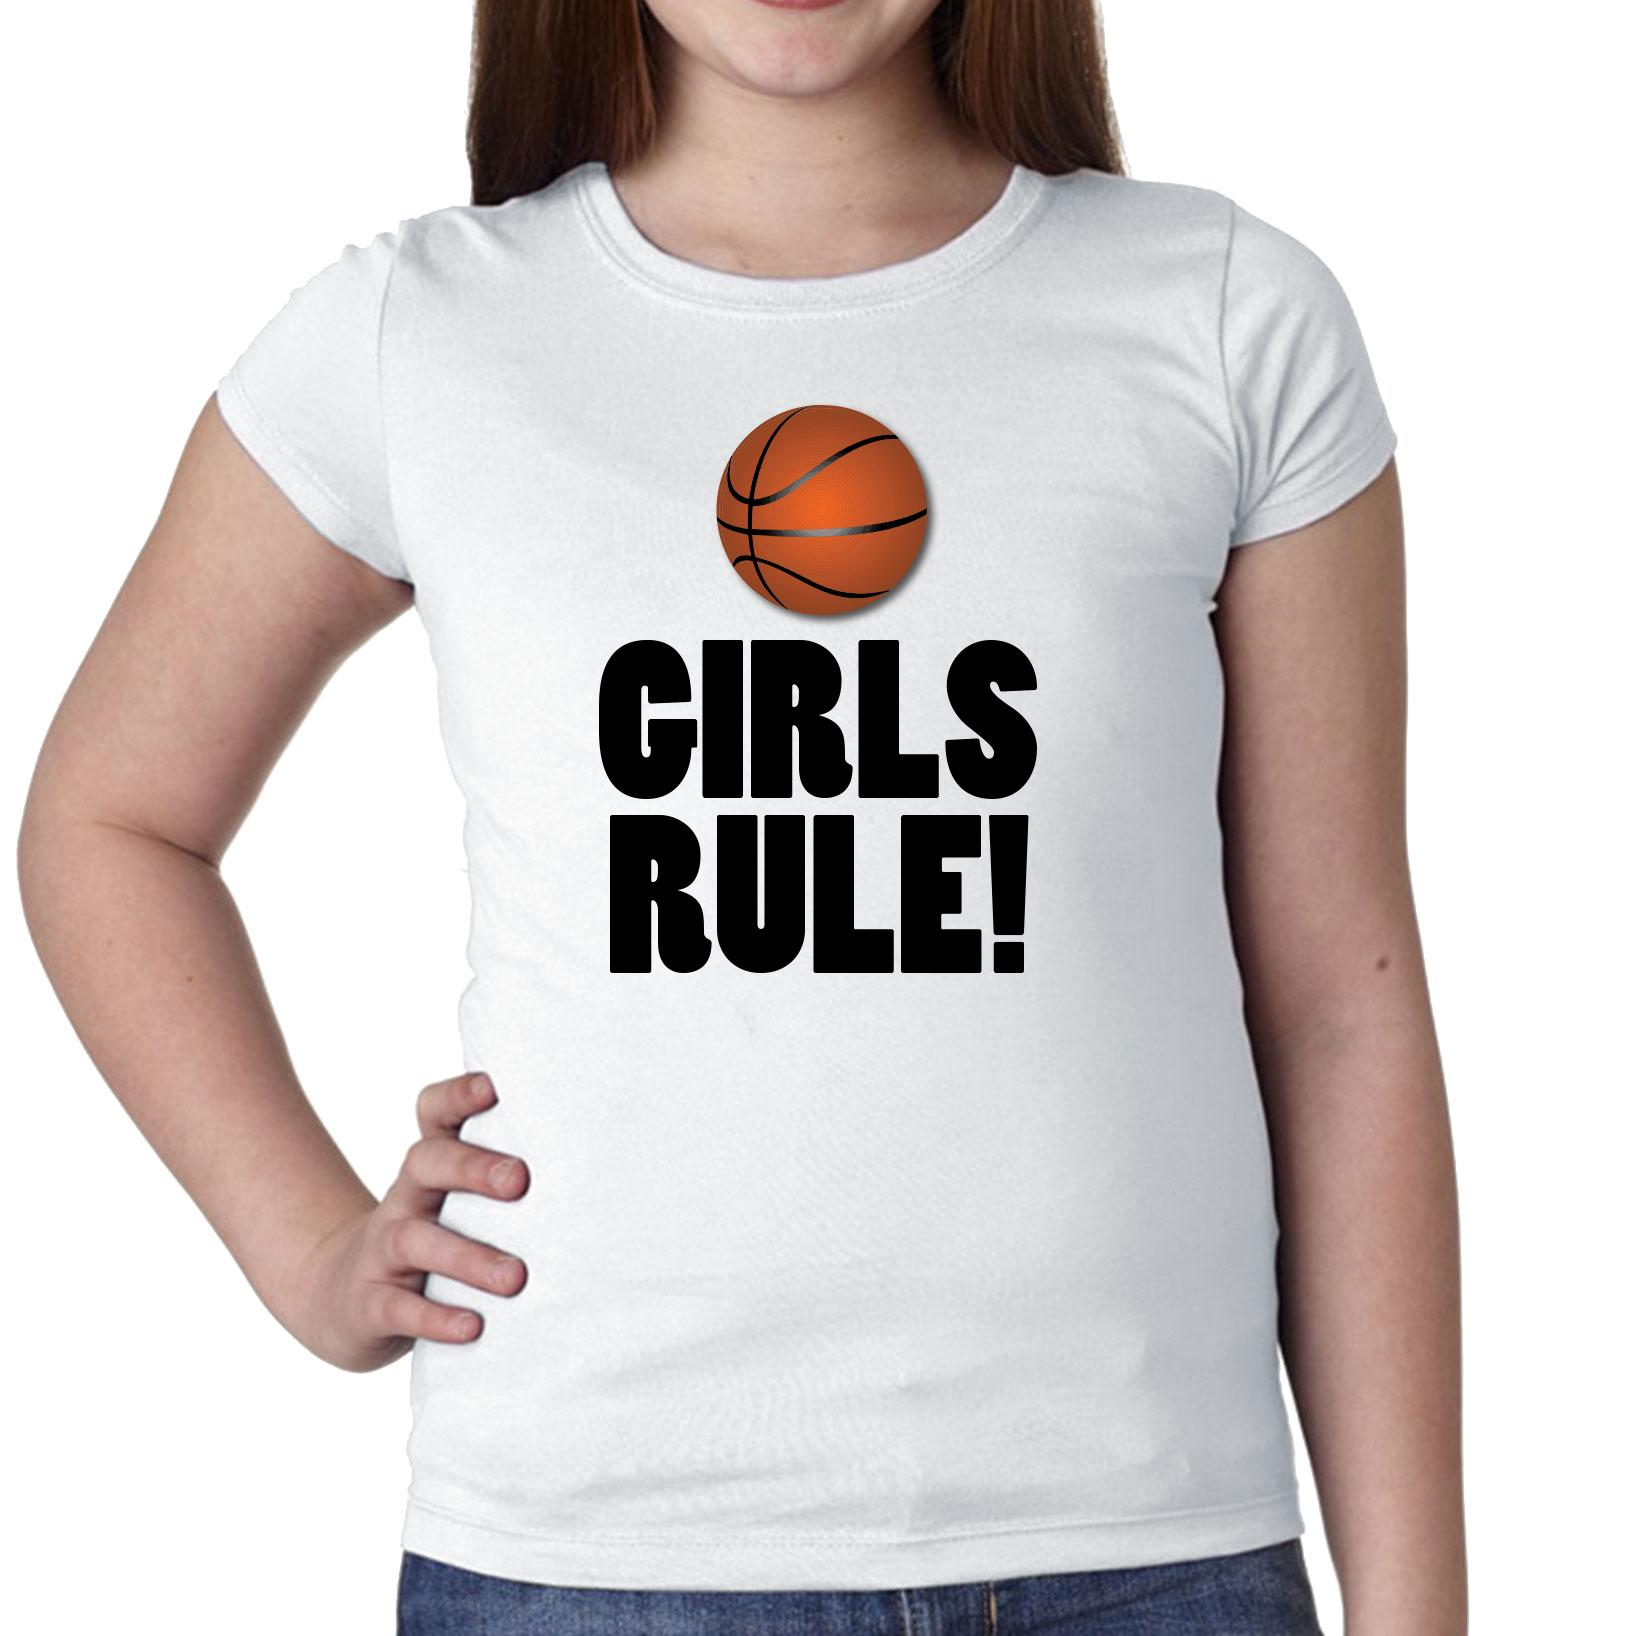 Girl's Basketball Team Rule Graphic Girl's Cotton Youth T-Shirt